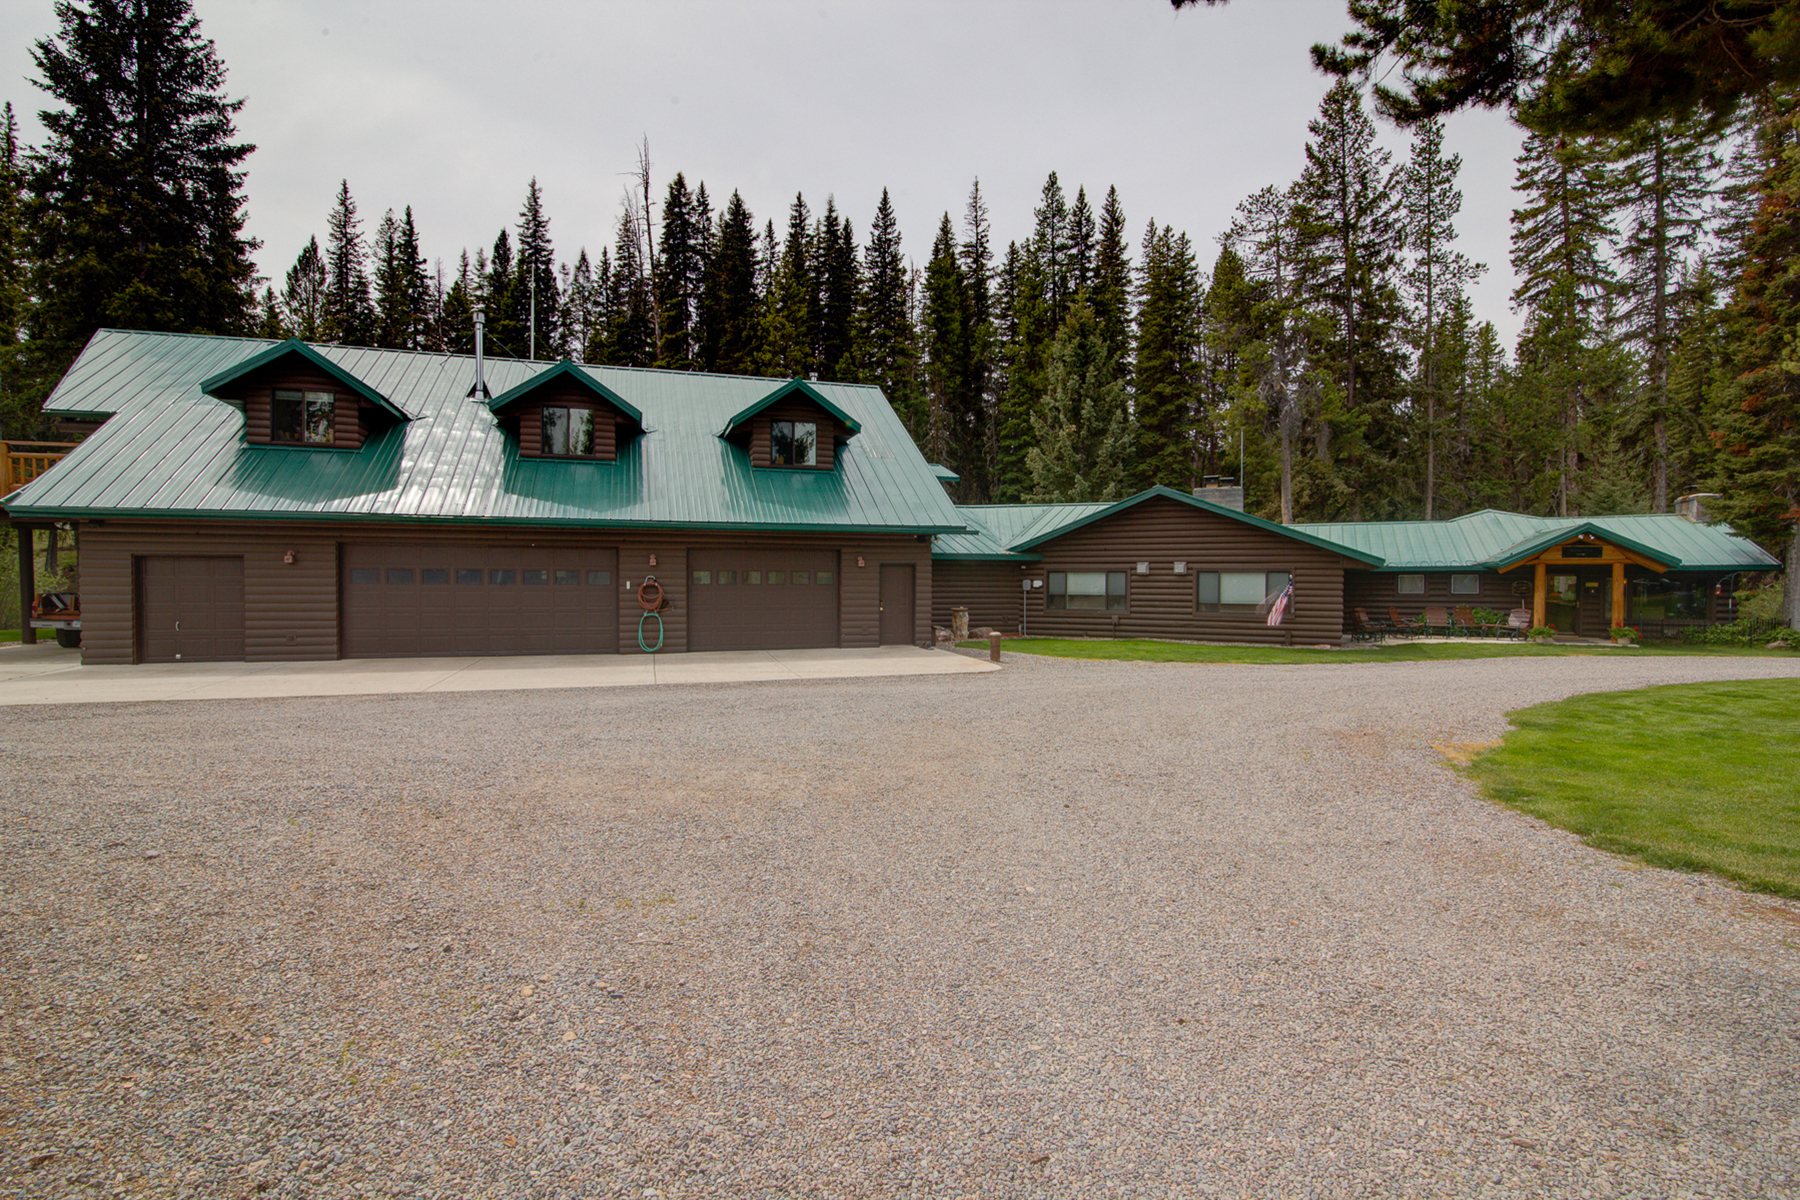 Single Family Home for Sale at 5730 MT Hwy 279 5730 Mt Highway 279 Lincoln, Montana, 59639 United States